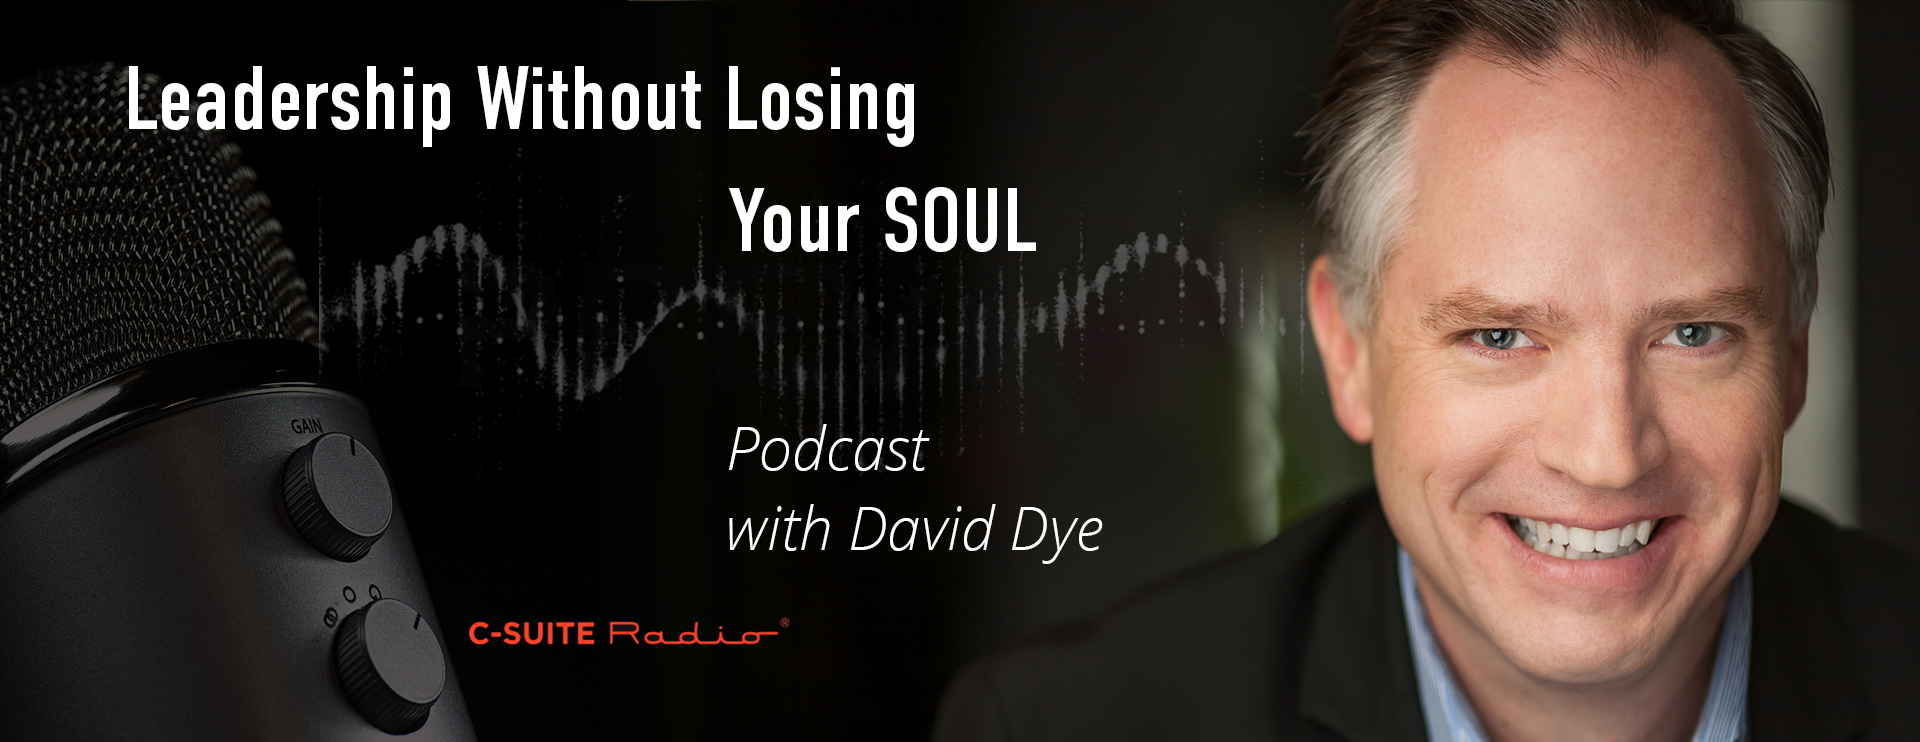 Leadership Without Losing Your Soul Podcast with David Dye